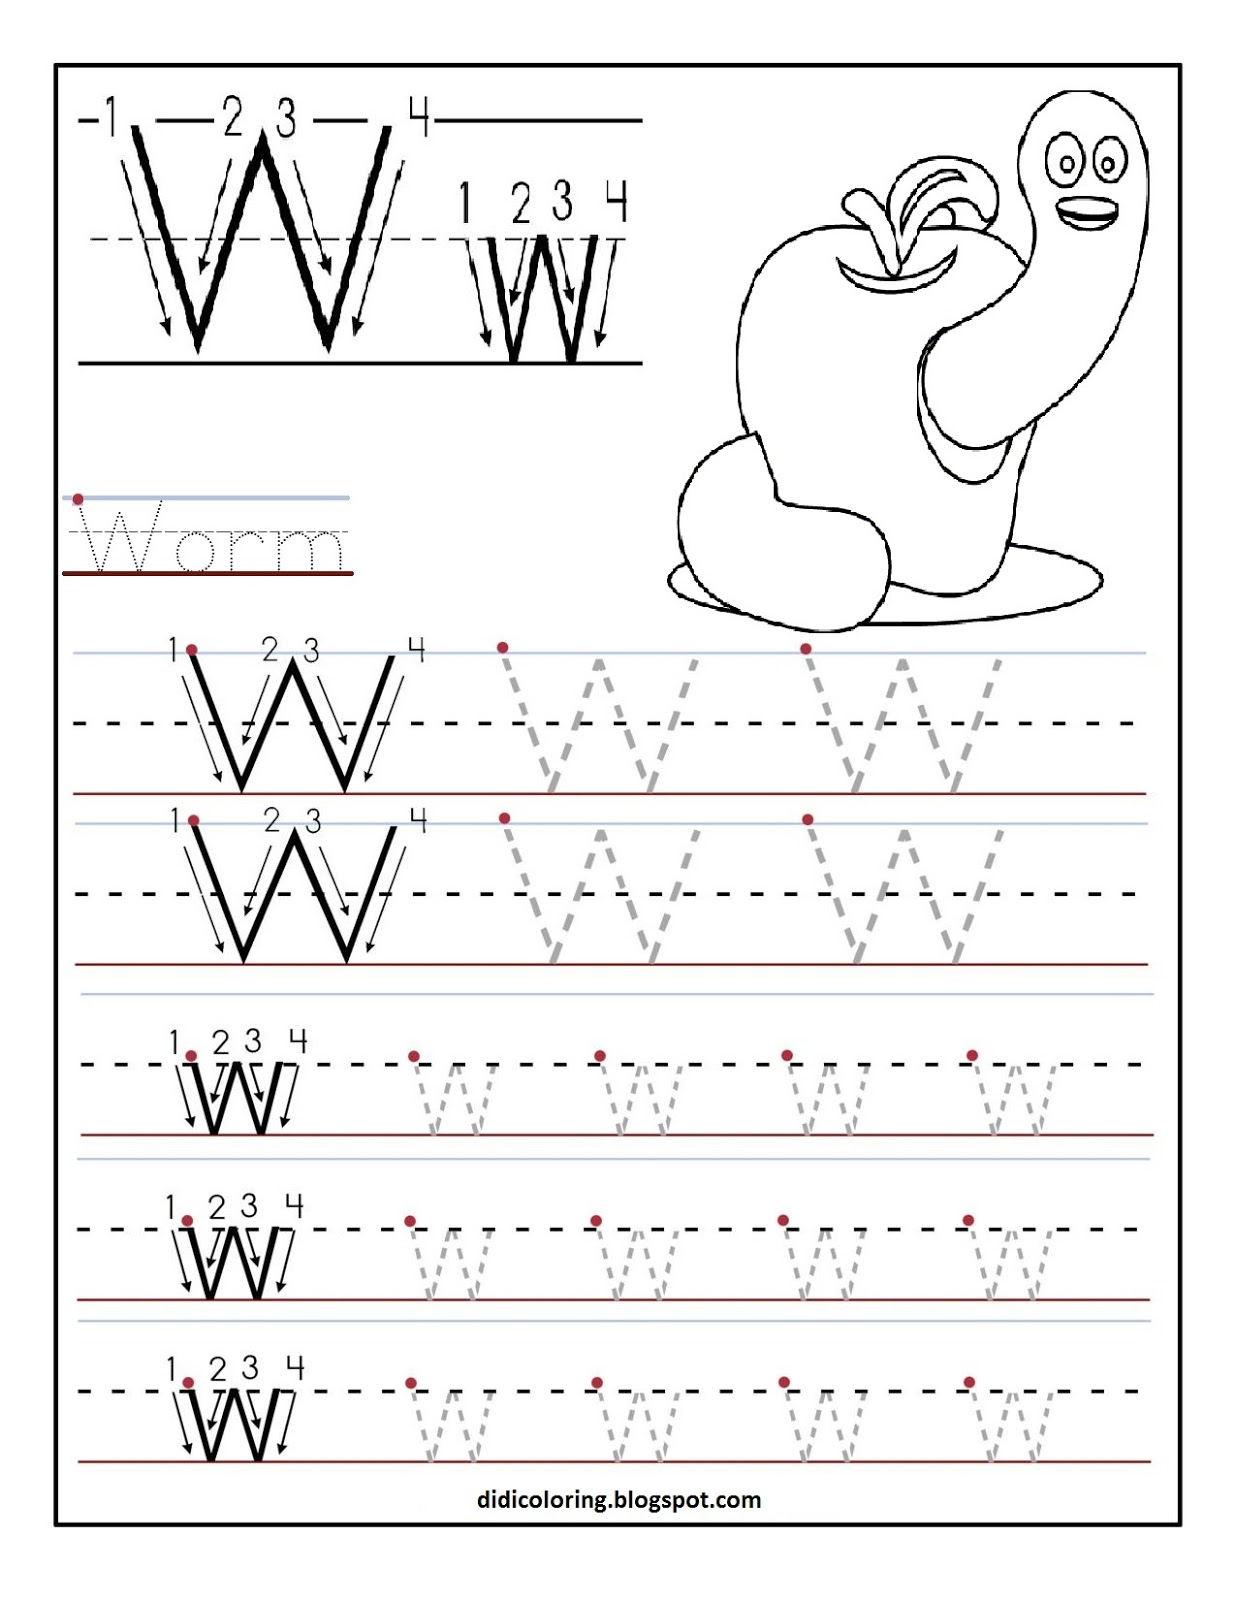 ... worksheet.best for your kid to learn and write,Enjoy writing letter W